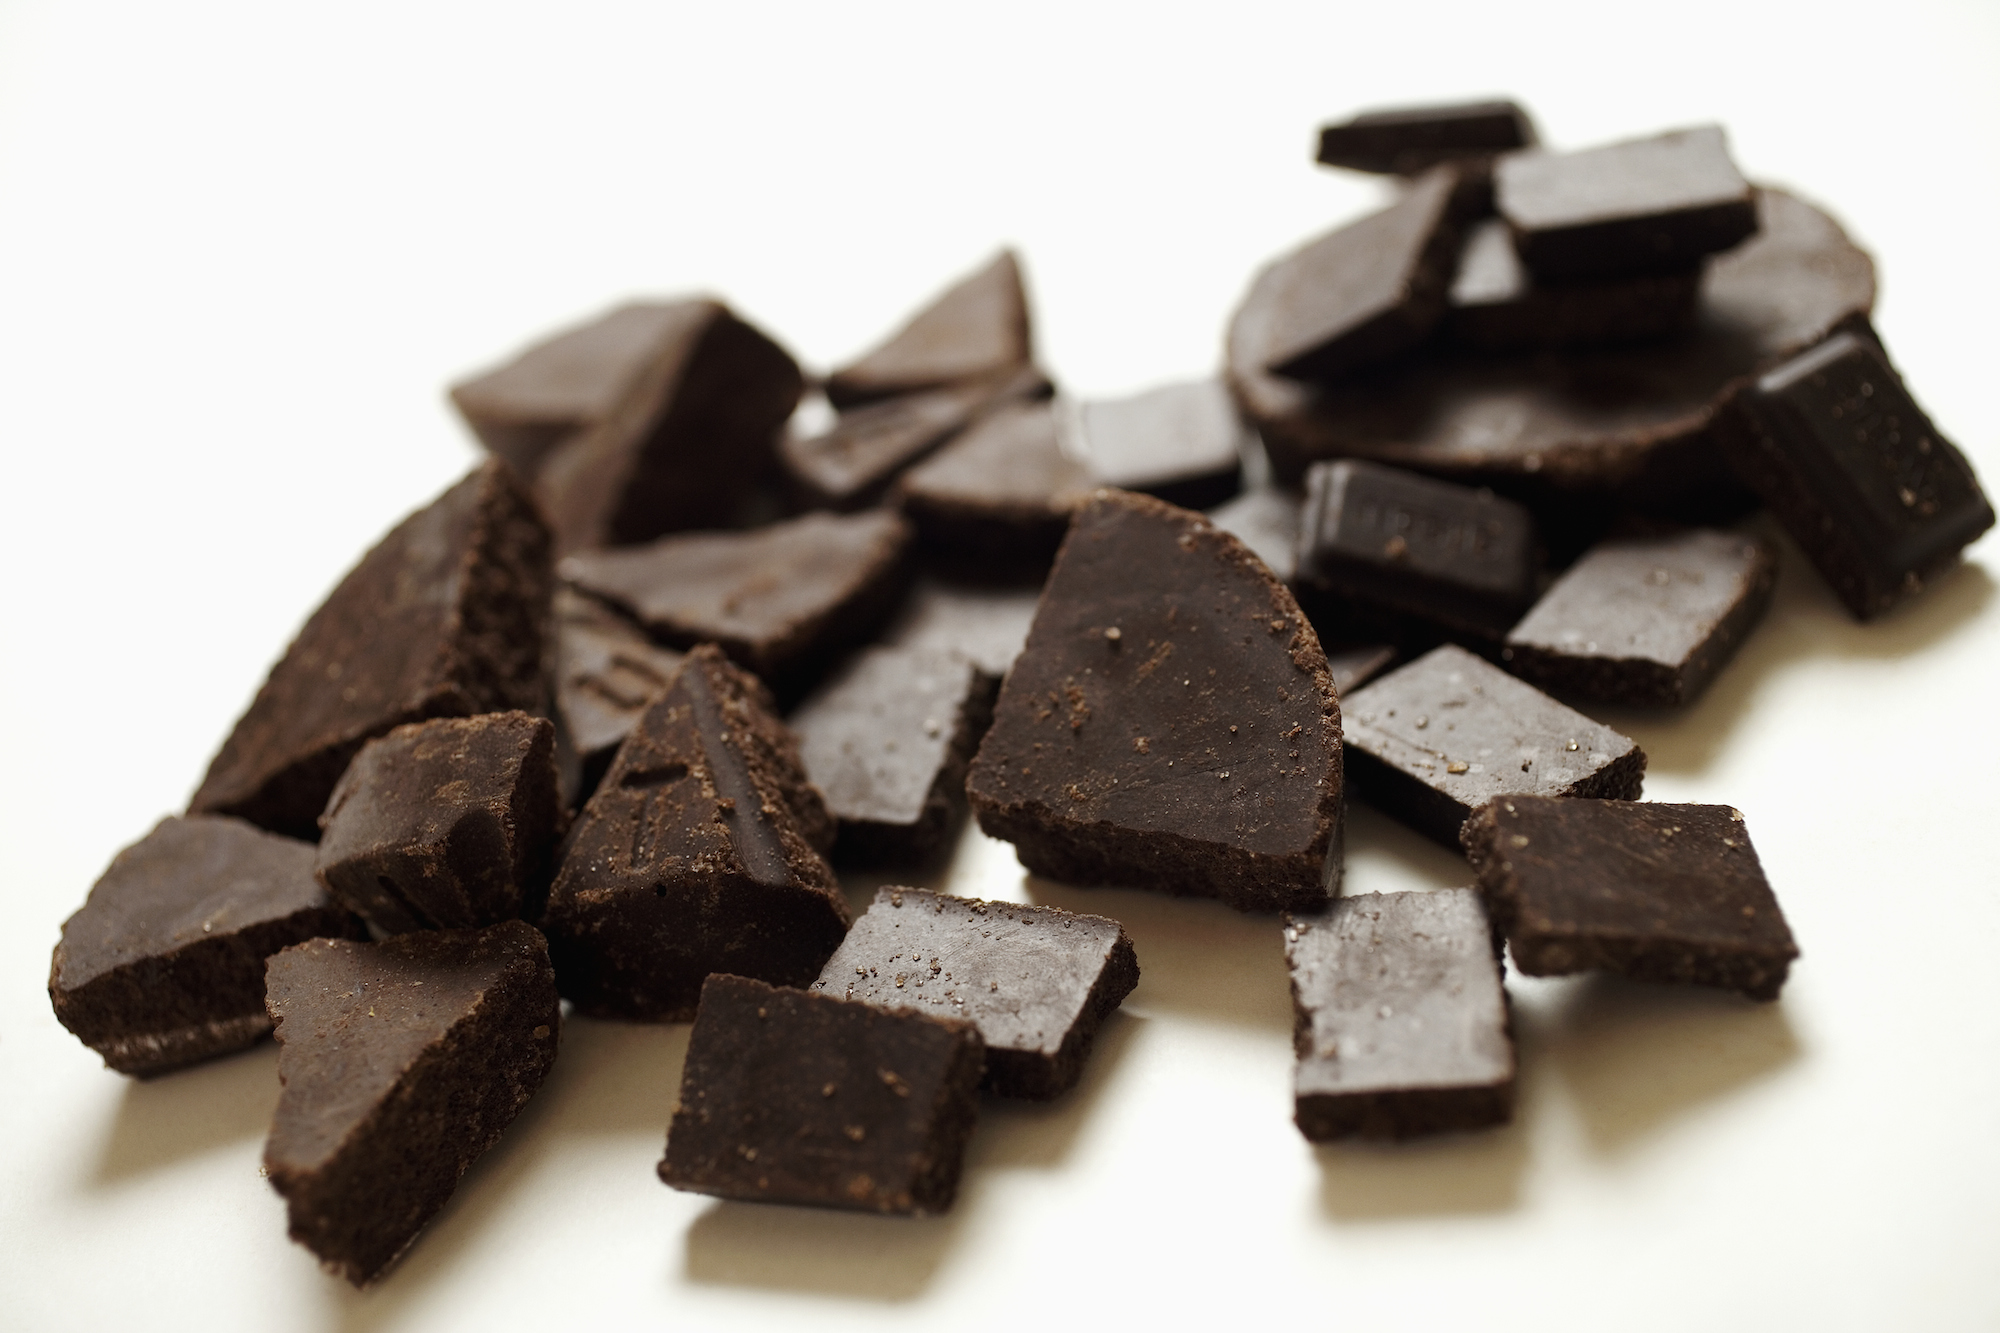 Pieces of chocolate.